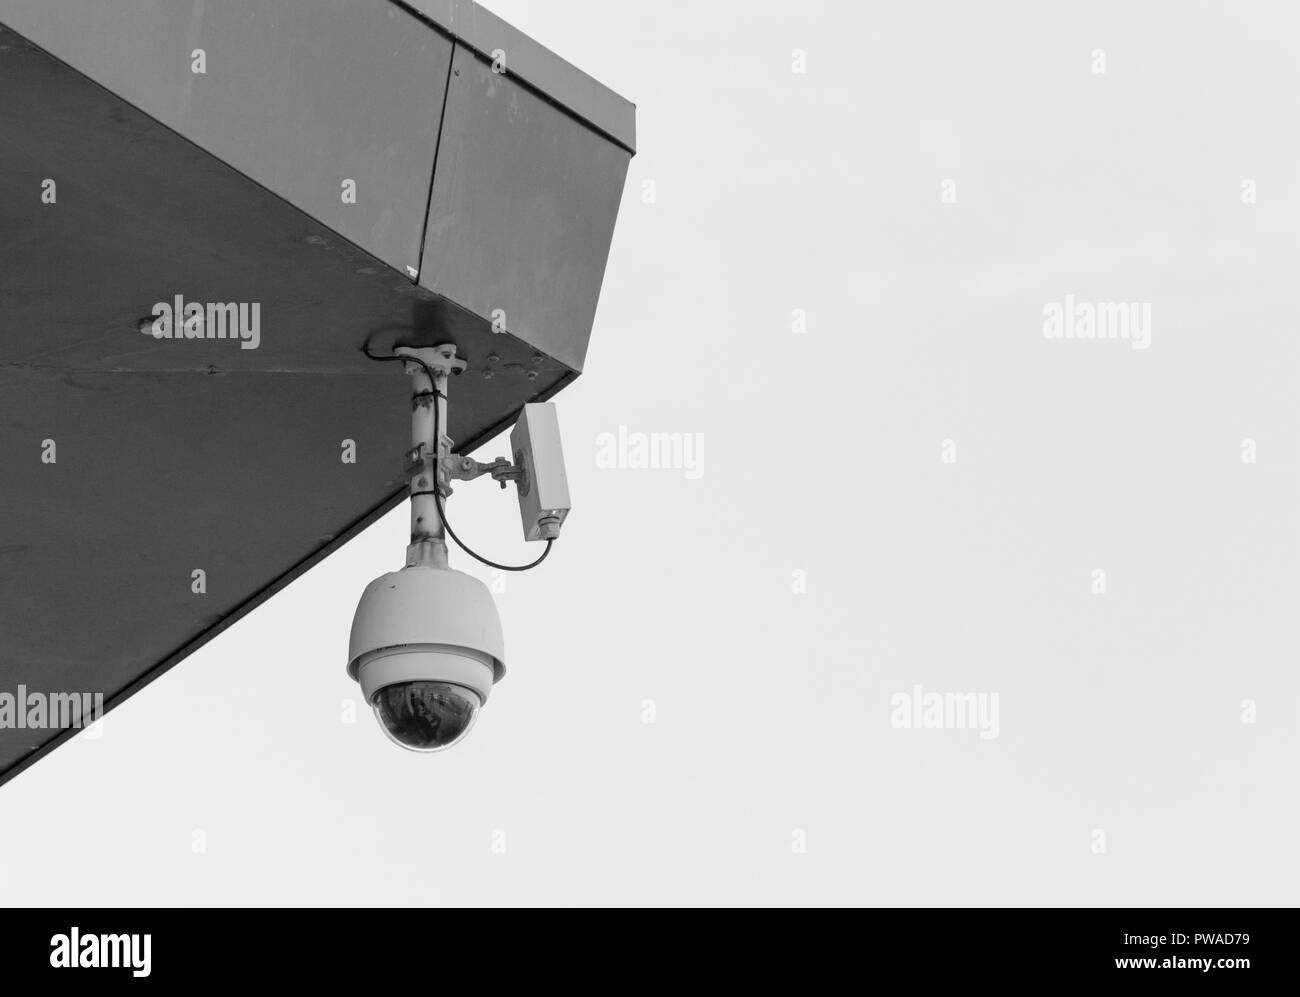 CCTV surveillance camera 'Watching Over You'. Crime prevention metaphor, surveillance state, security system concept. - Stock Image